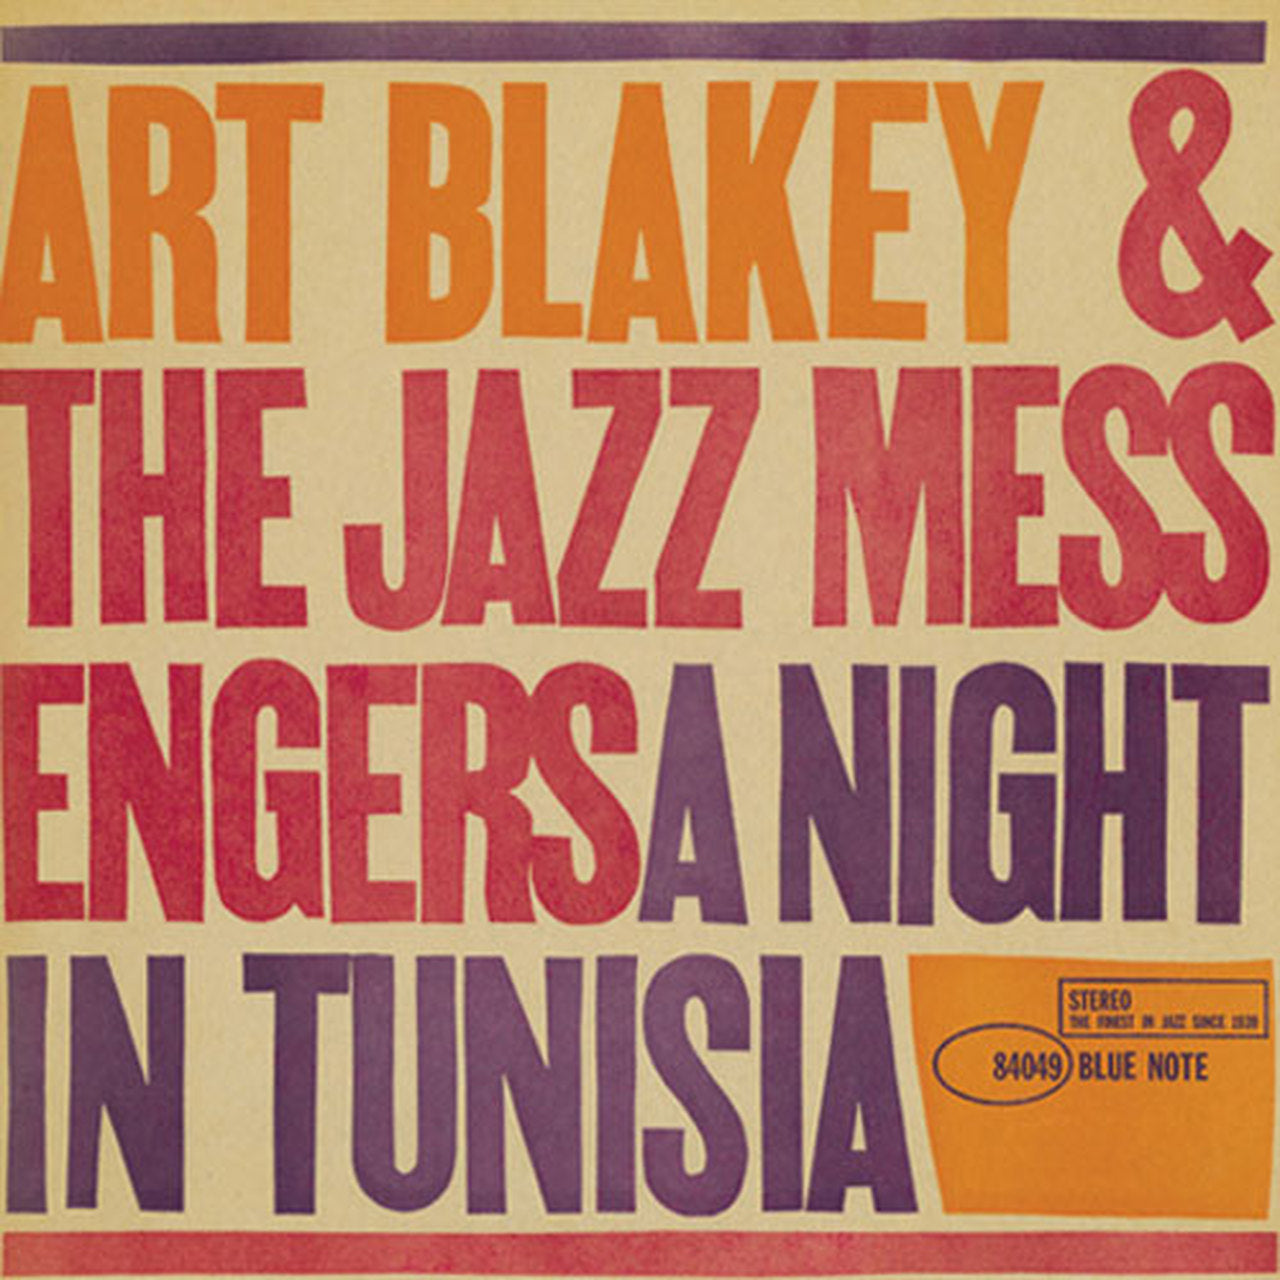 Art Blakey & The Jazz Messengers - A Night in Tunisia (180g vinyl)